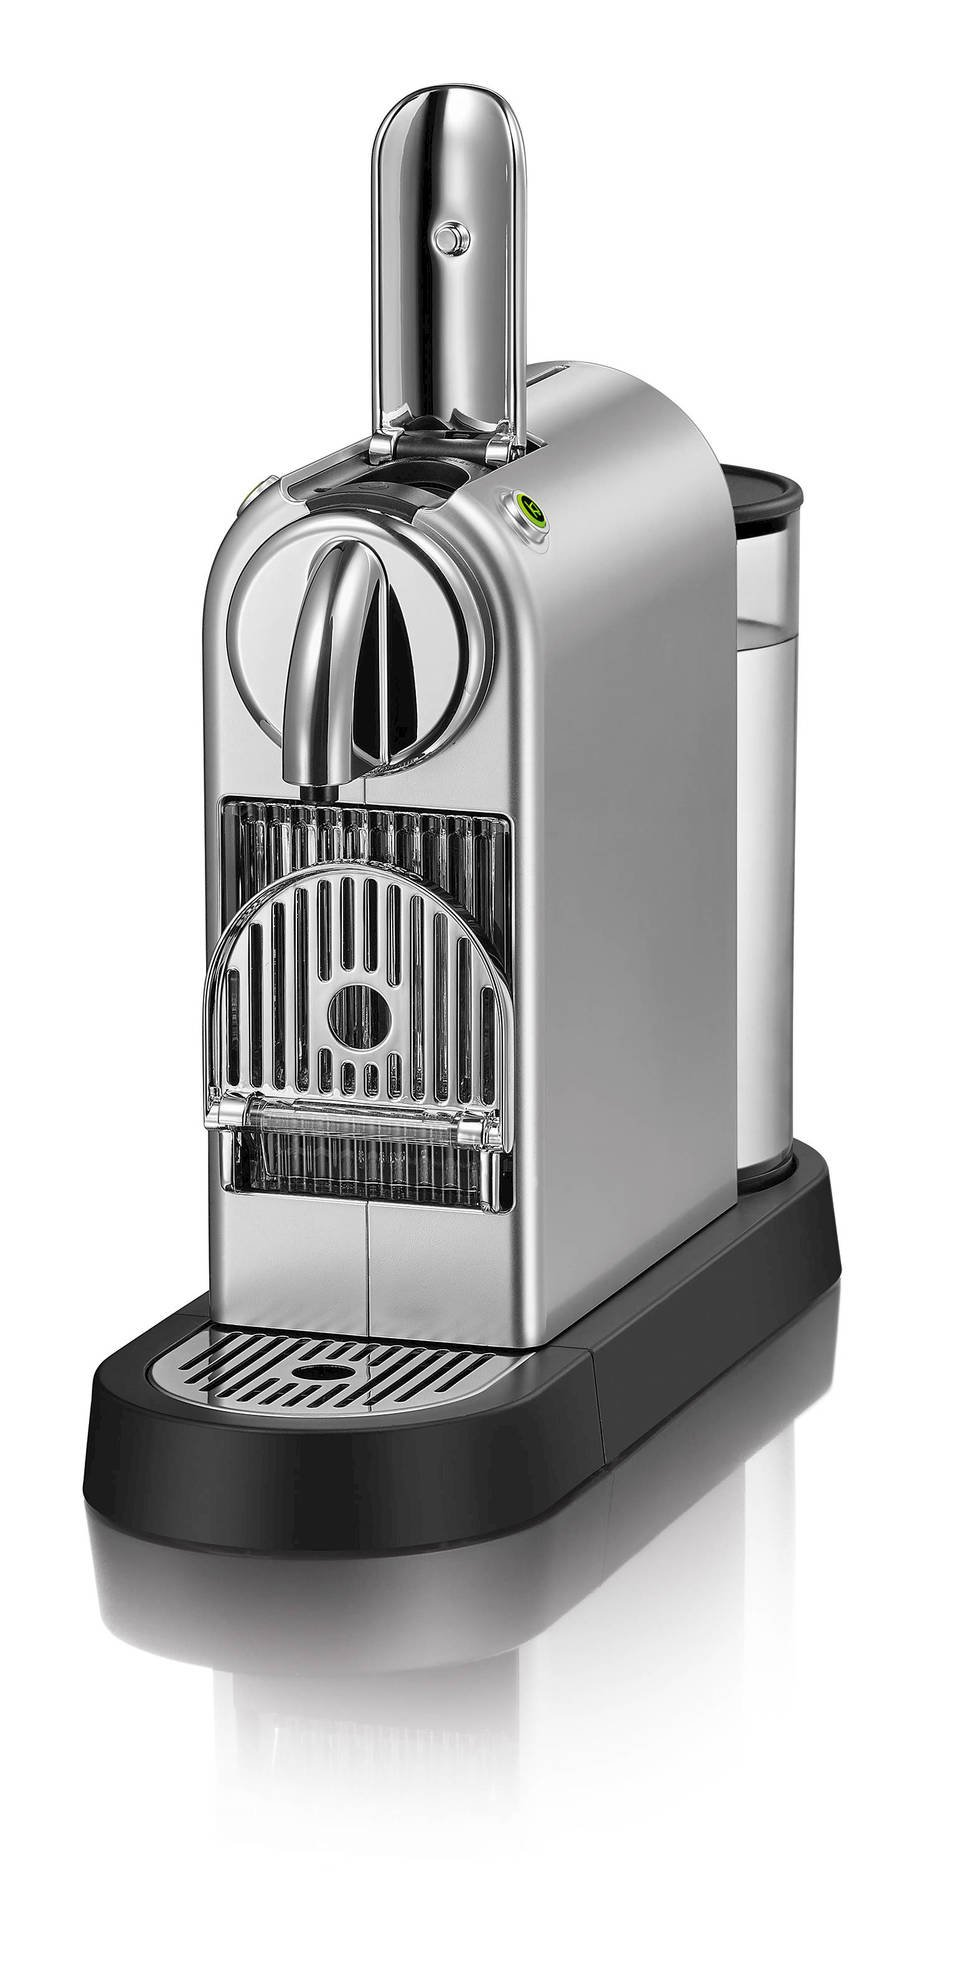 Nespresso Citiz C111 Espresso Maker with Aeroccino Plus Milk Frother, Chrome by Nestle Nespresso